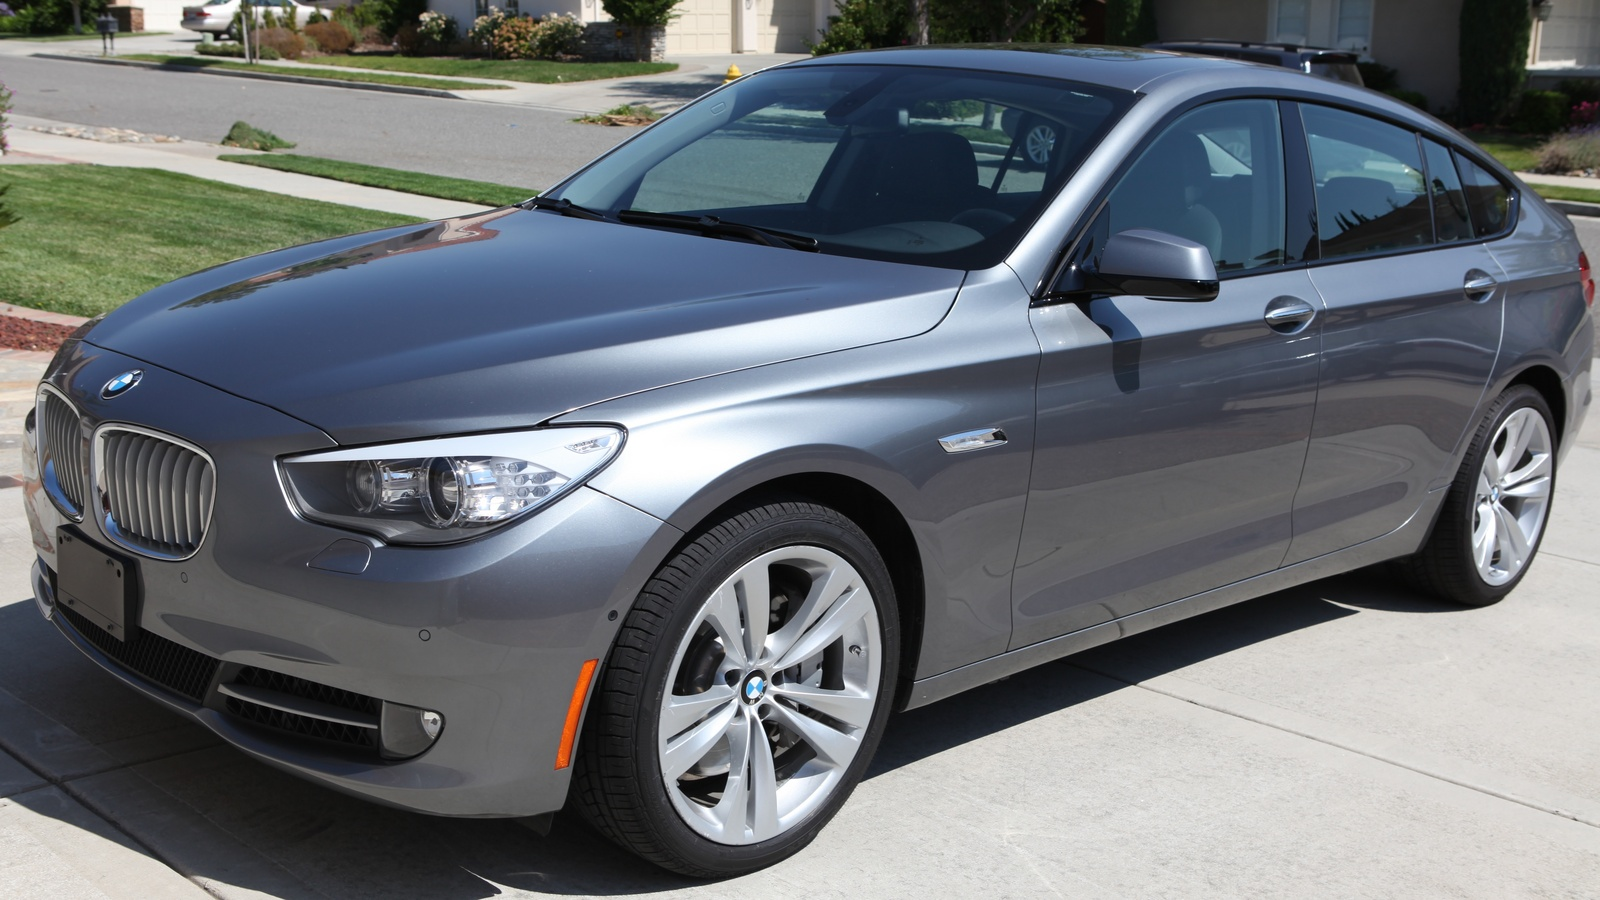 2010 Bmw 5 Series 550i The Sandlot Heading Home Full Movie Viooz Ebay Edmunds Has Detailed Price Information For Used Gran Turismo Save On One Of 10 Turismos Near You